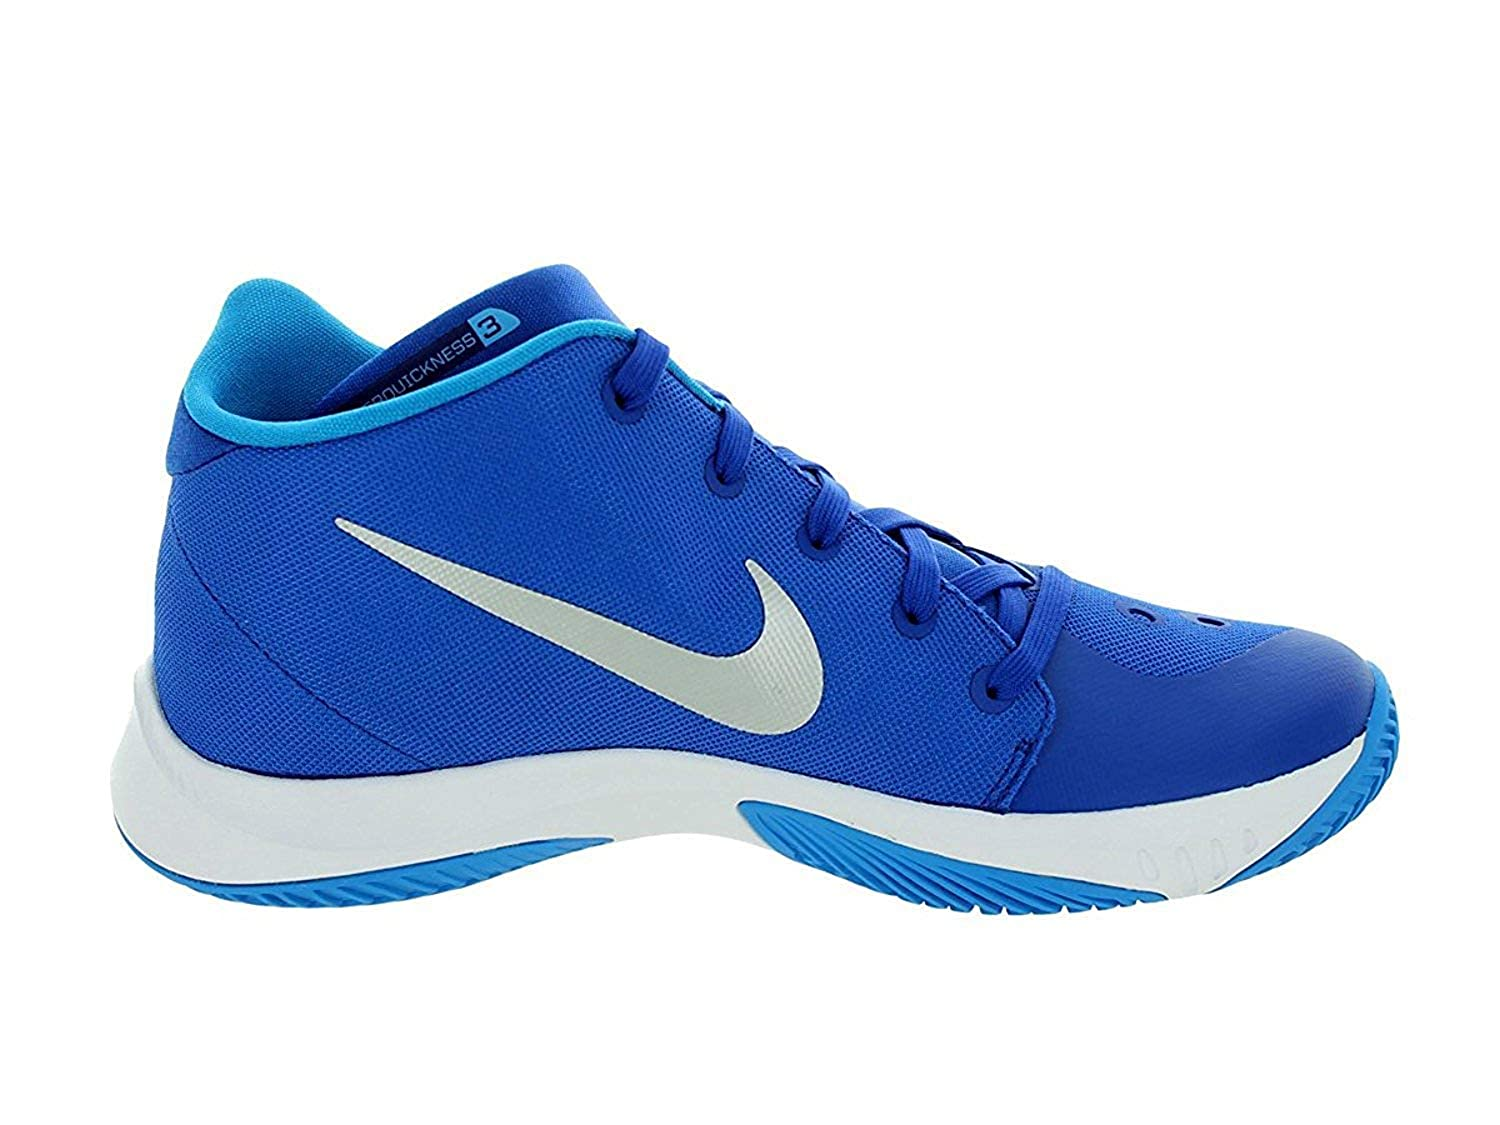 new product 65d2d b17ad NIKE ZM Hyperquickness 2015 TB 749883 404 (Game Royal Blue Hero Metallic  Silver, 10.5 M US)  Amazon.in  Shoes   Handbags